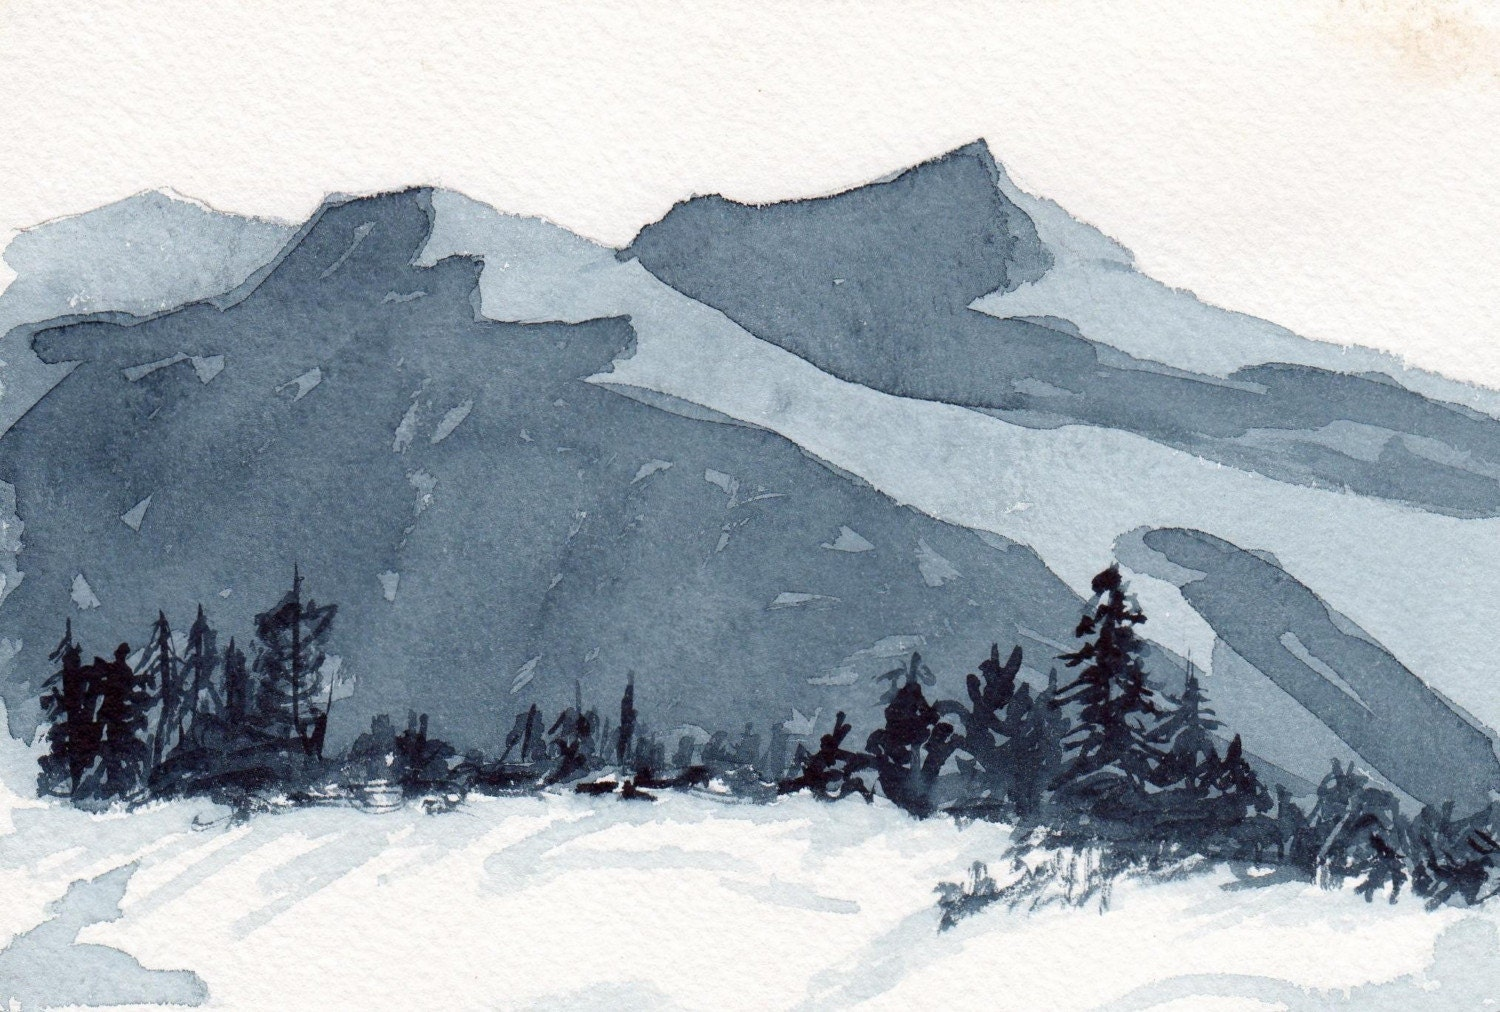 Mountain Peaks - Watercolor painting